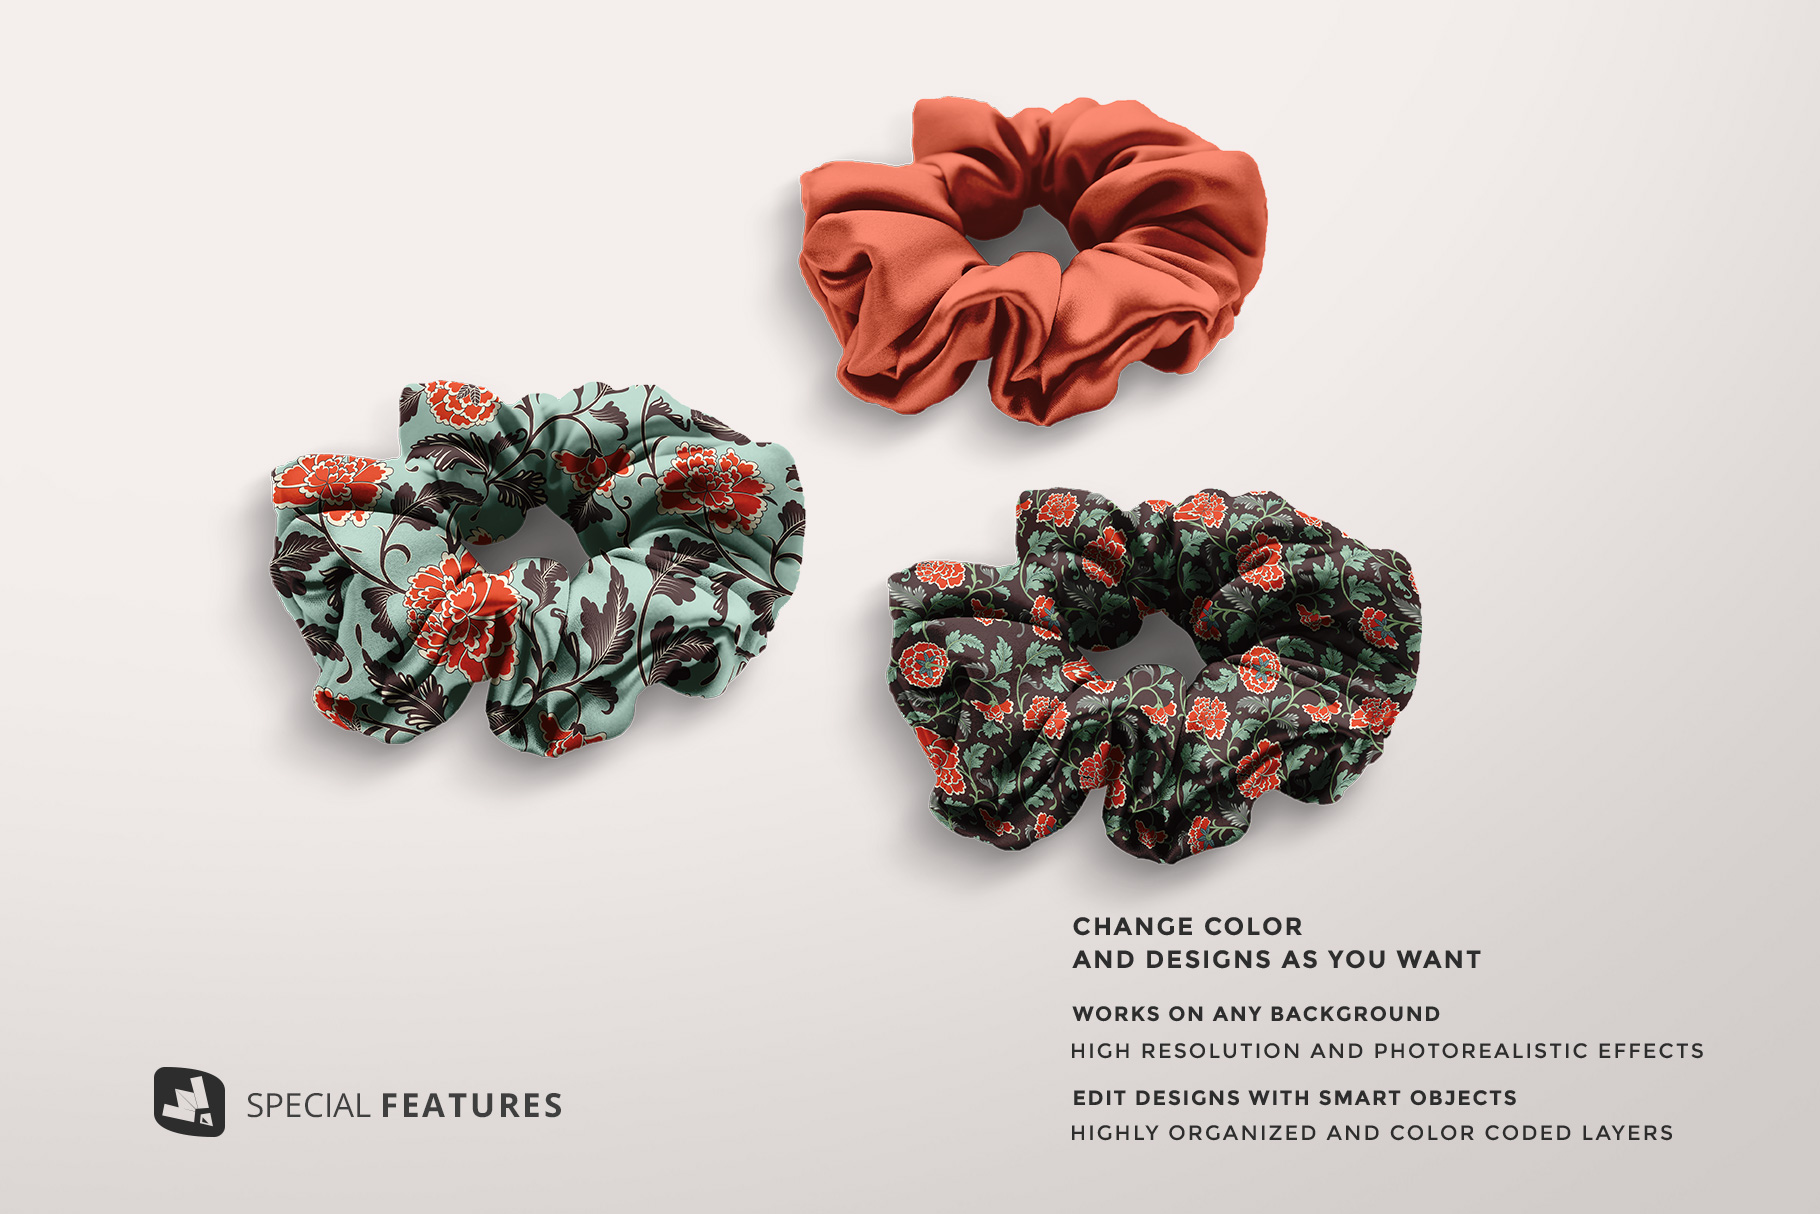 special features of the silk scrunchy mockup